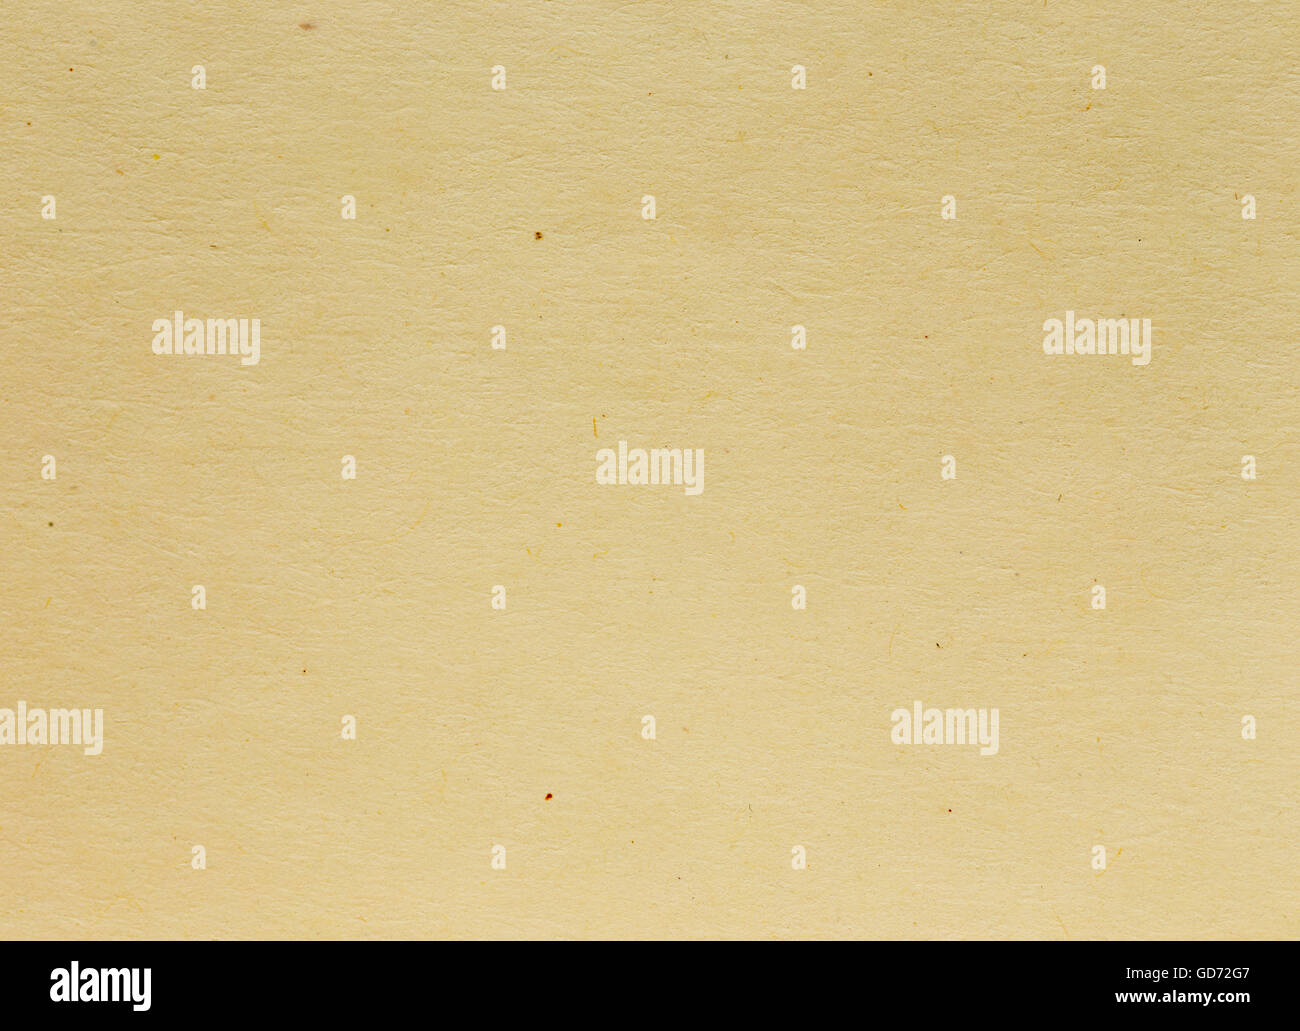 Clear paper background with particles for design-use - Stock Image